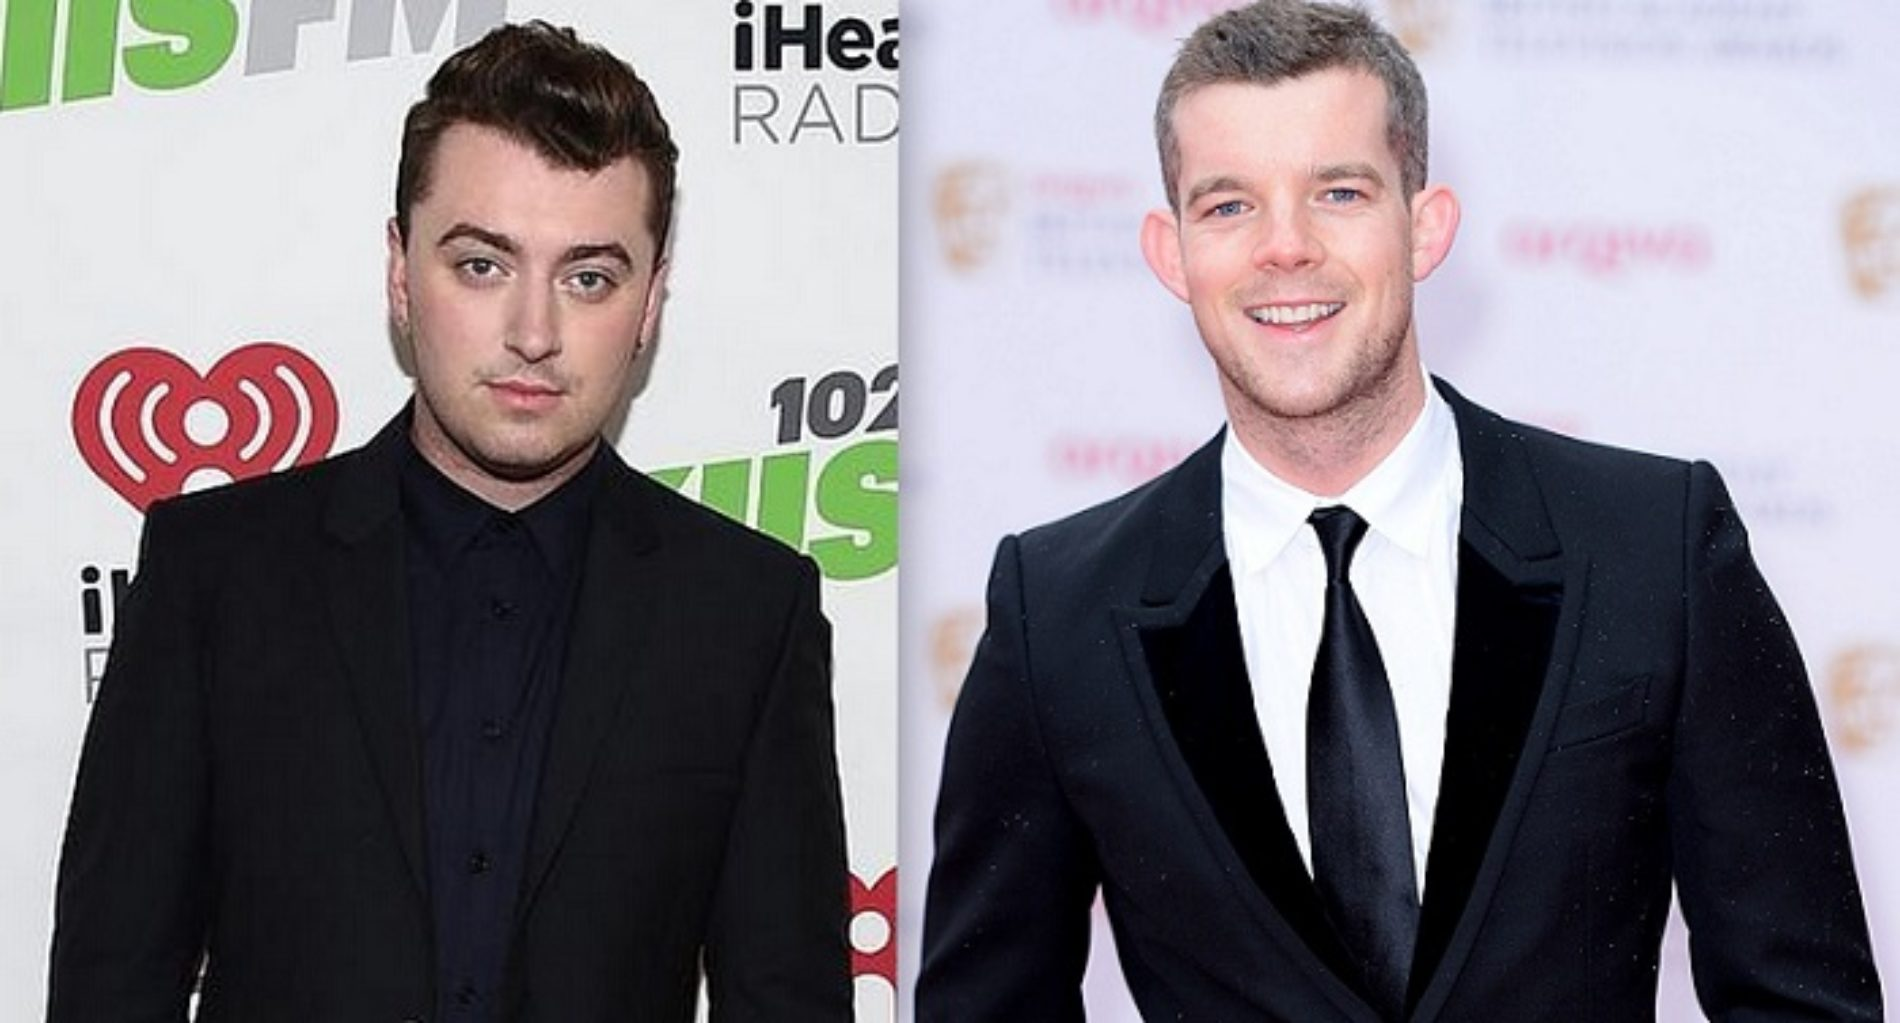 British Tabloid Speculates Russell Tovey And Sam Smith Romance